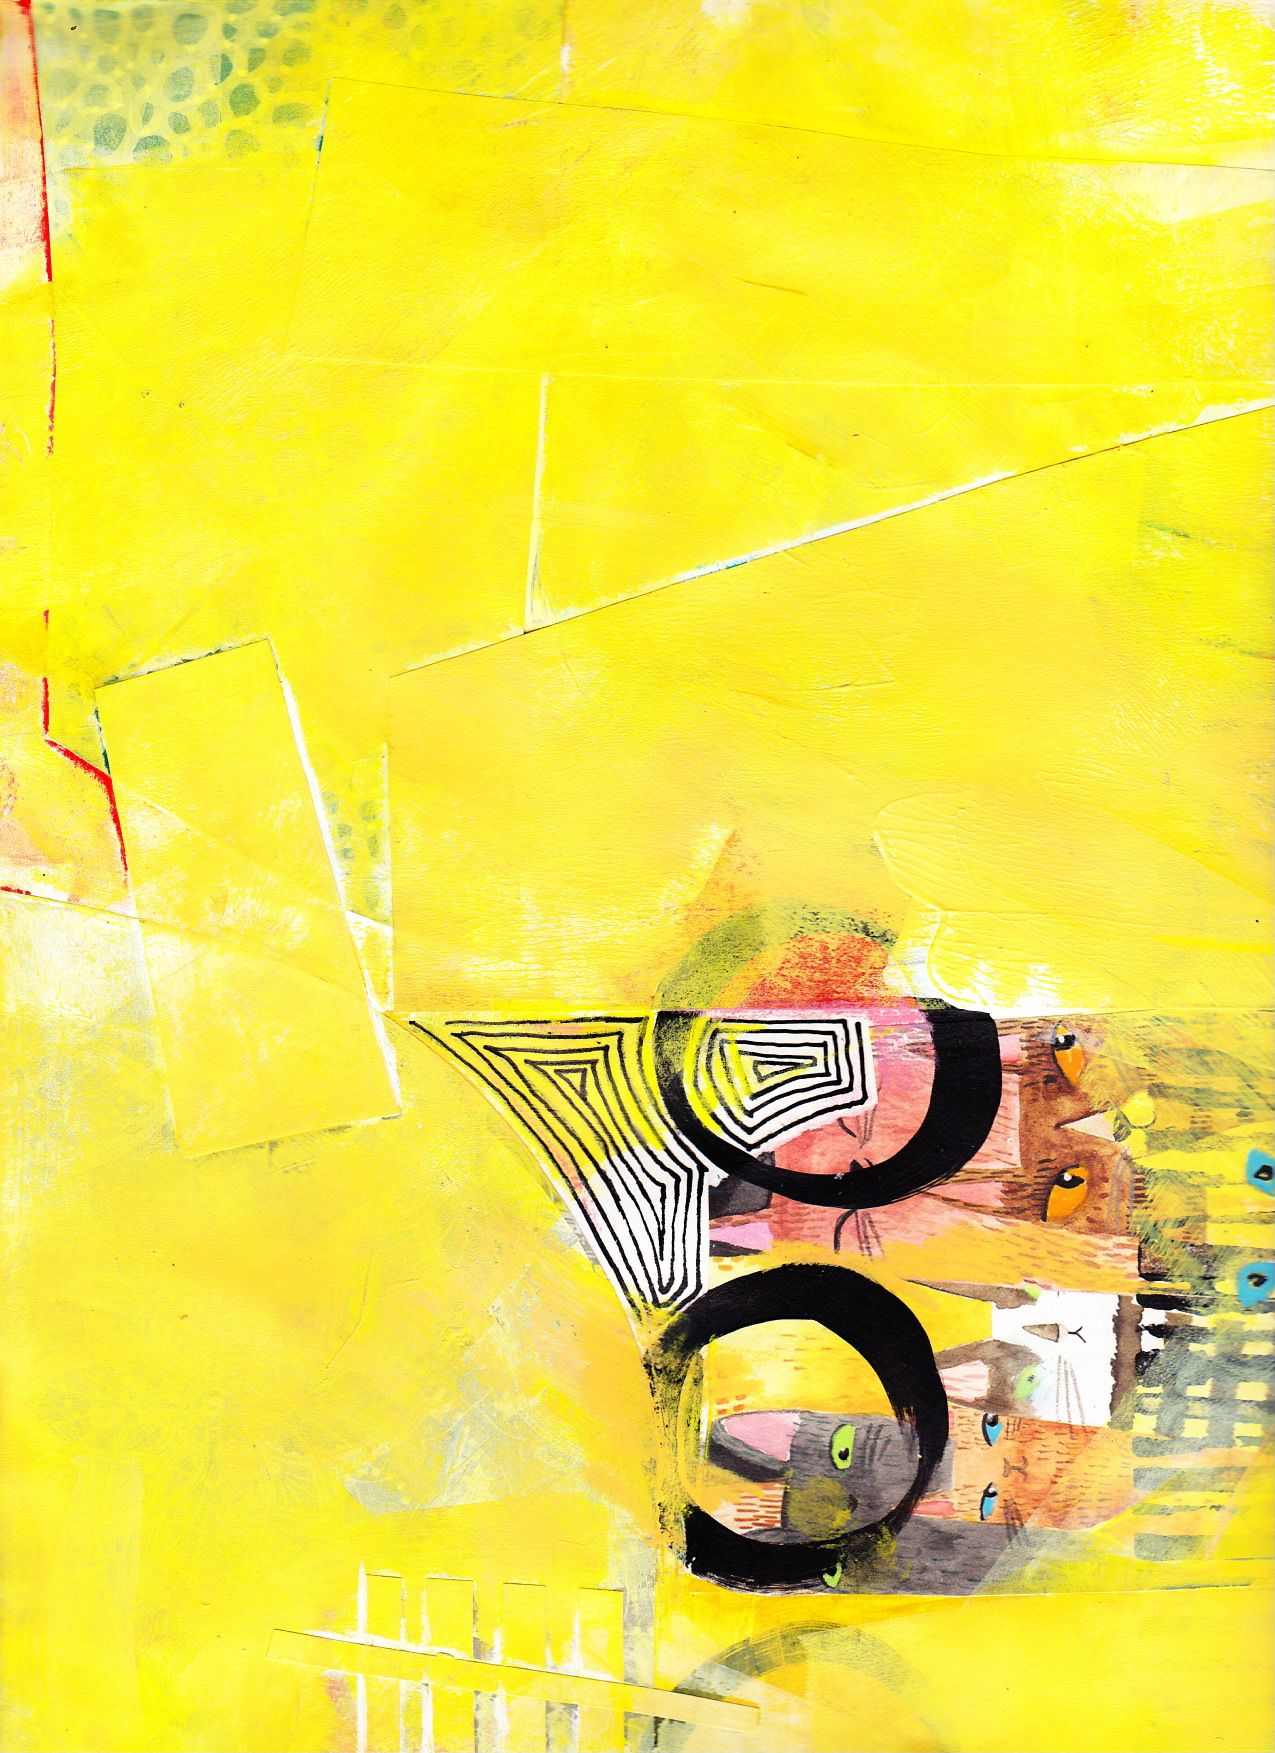 """8-12, Acrylic, crayon and collage on paper, 9"""" x 12"""", from lesson 8 - Busy, then Mostly Quiet, Jane Davies course 100 Drawings on Cheap Paper  One of those where my idea of """"Quiet"""" (bright yellow) didn't exactly comply with the lesson plan."""